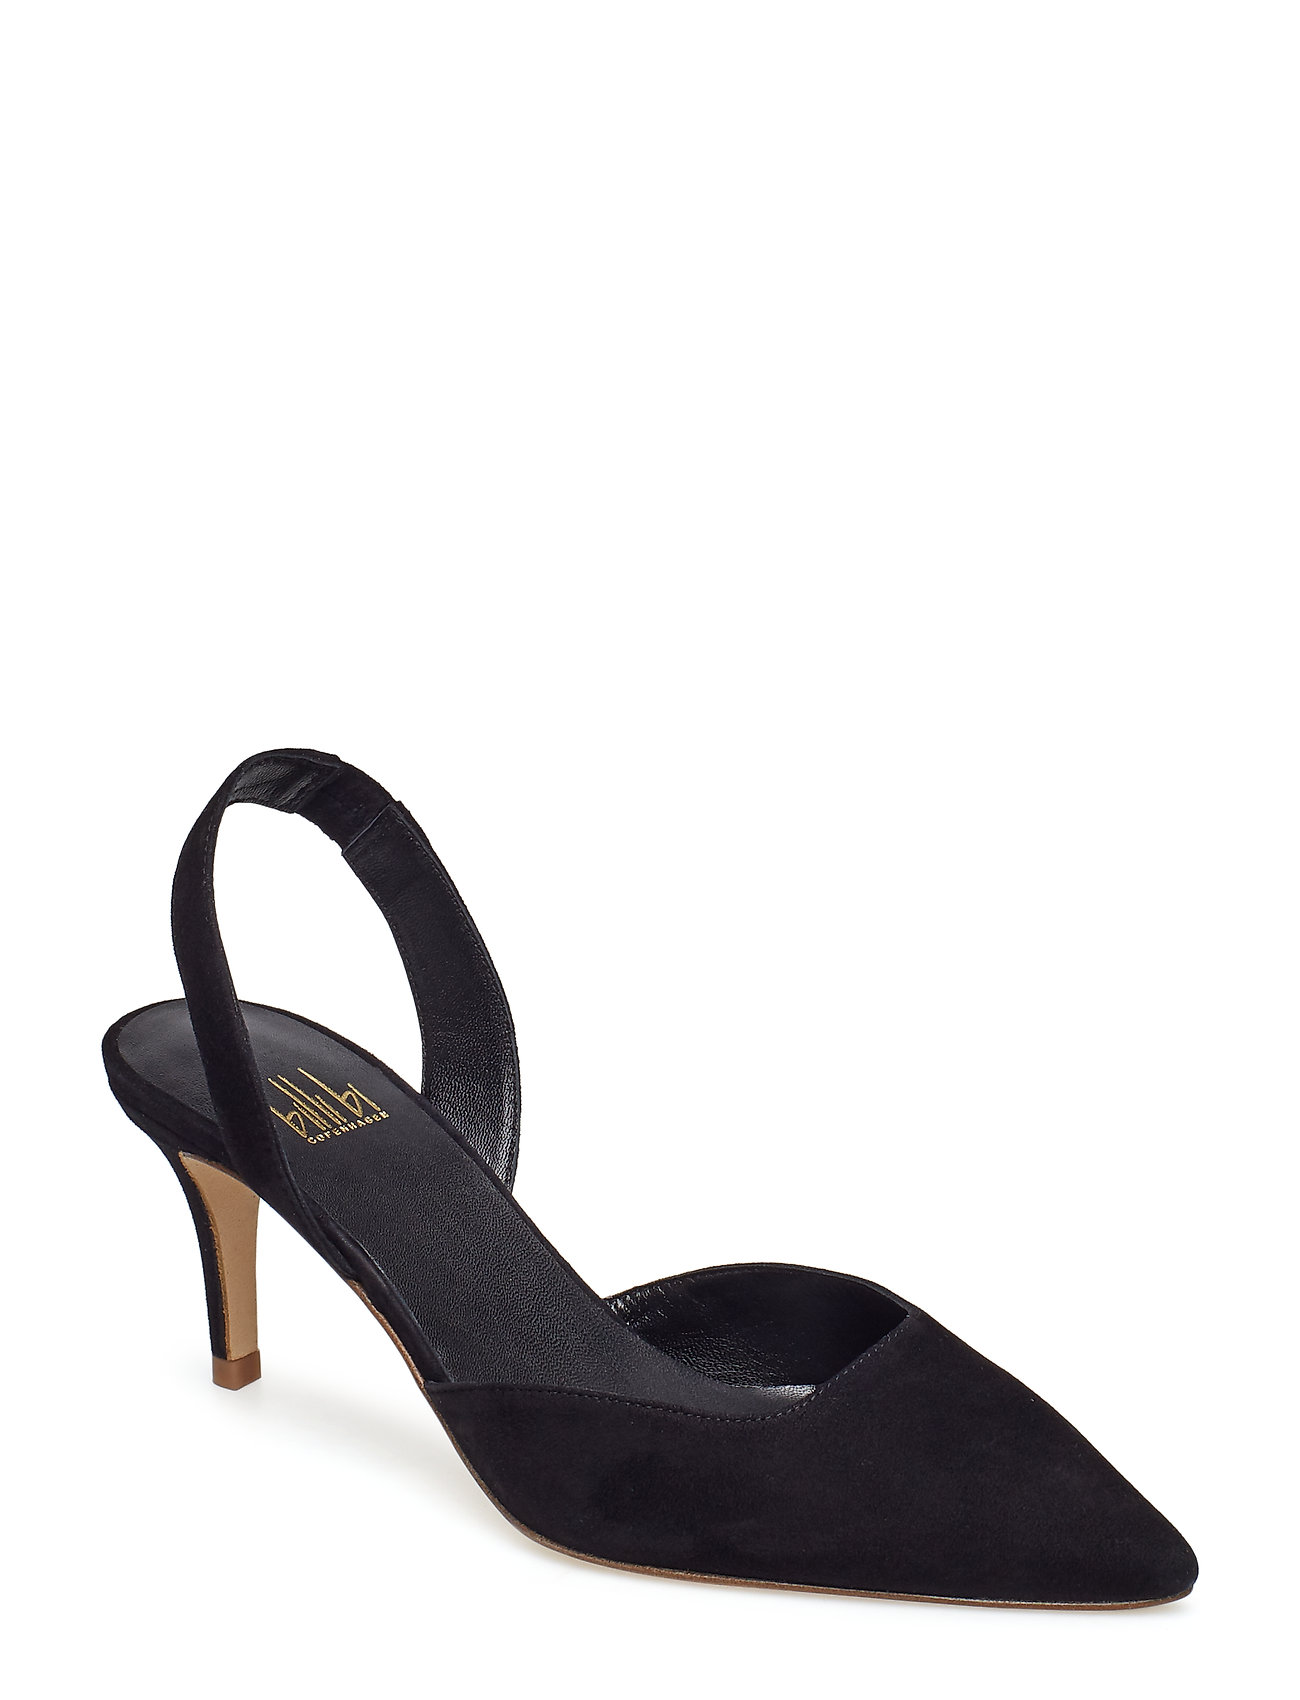 Billi Bi PUMPS 8039 - BLACK SUEDE 50